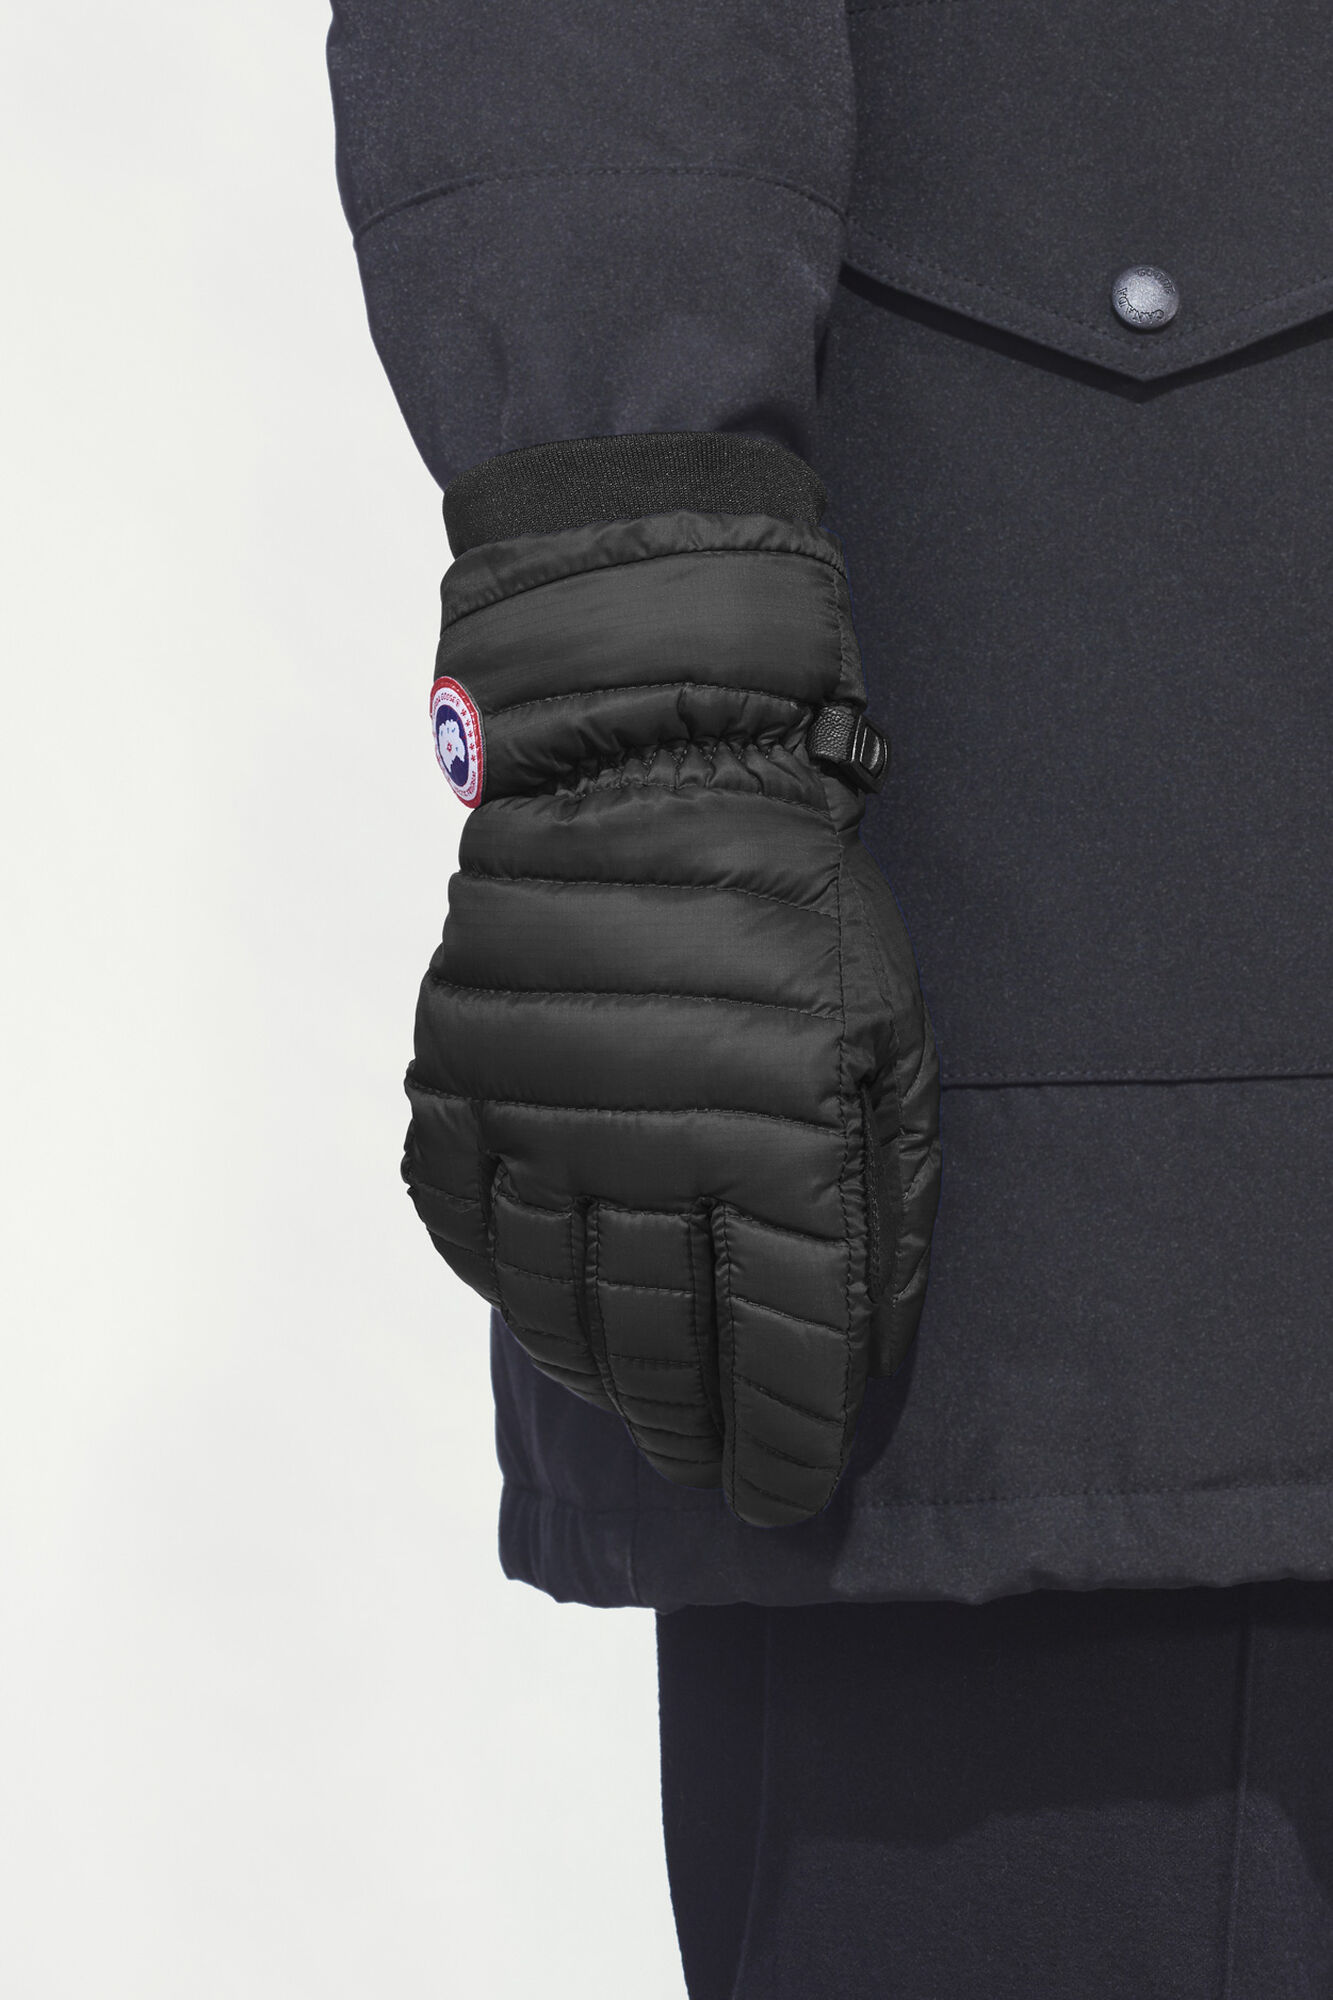 Canada Goose kids outlet official - Women's Lightweight Gloves | Canada Goose?